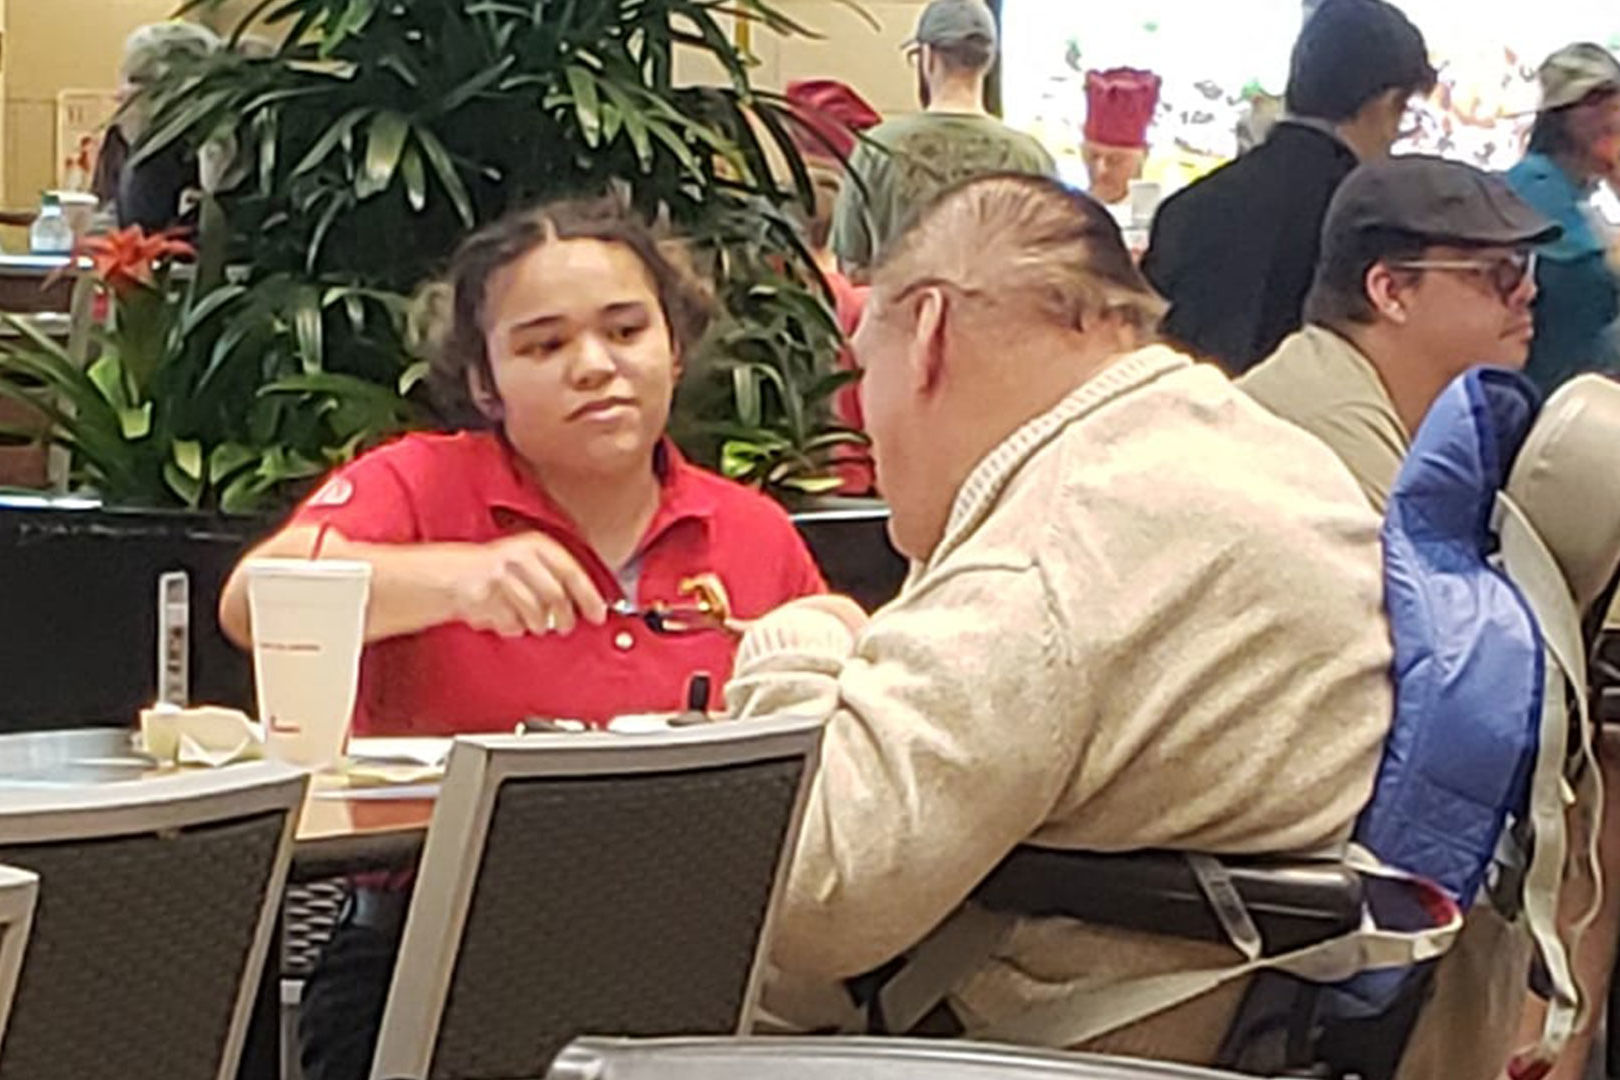 Chick fil-A Employee Spotted Feeding Disabled Customer in Texas Food Court